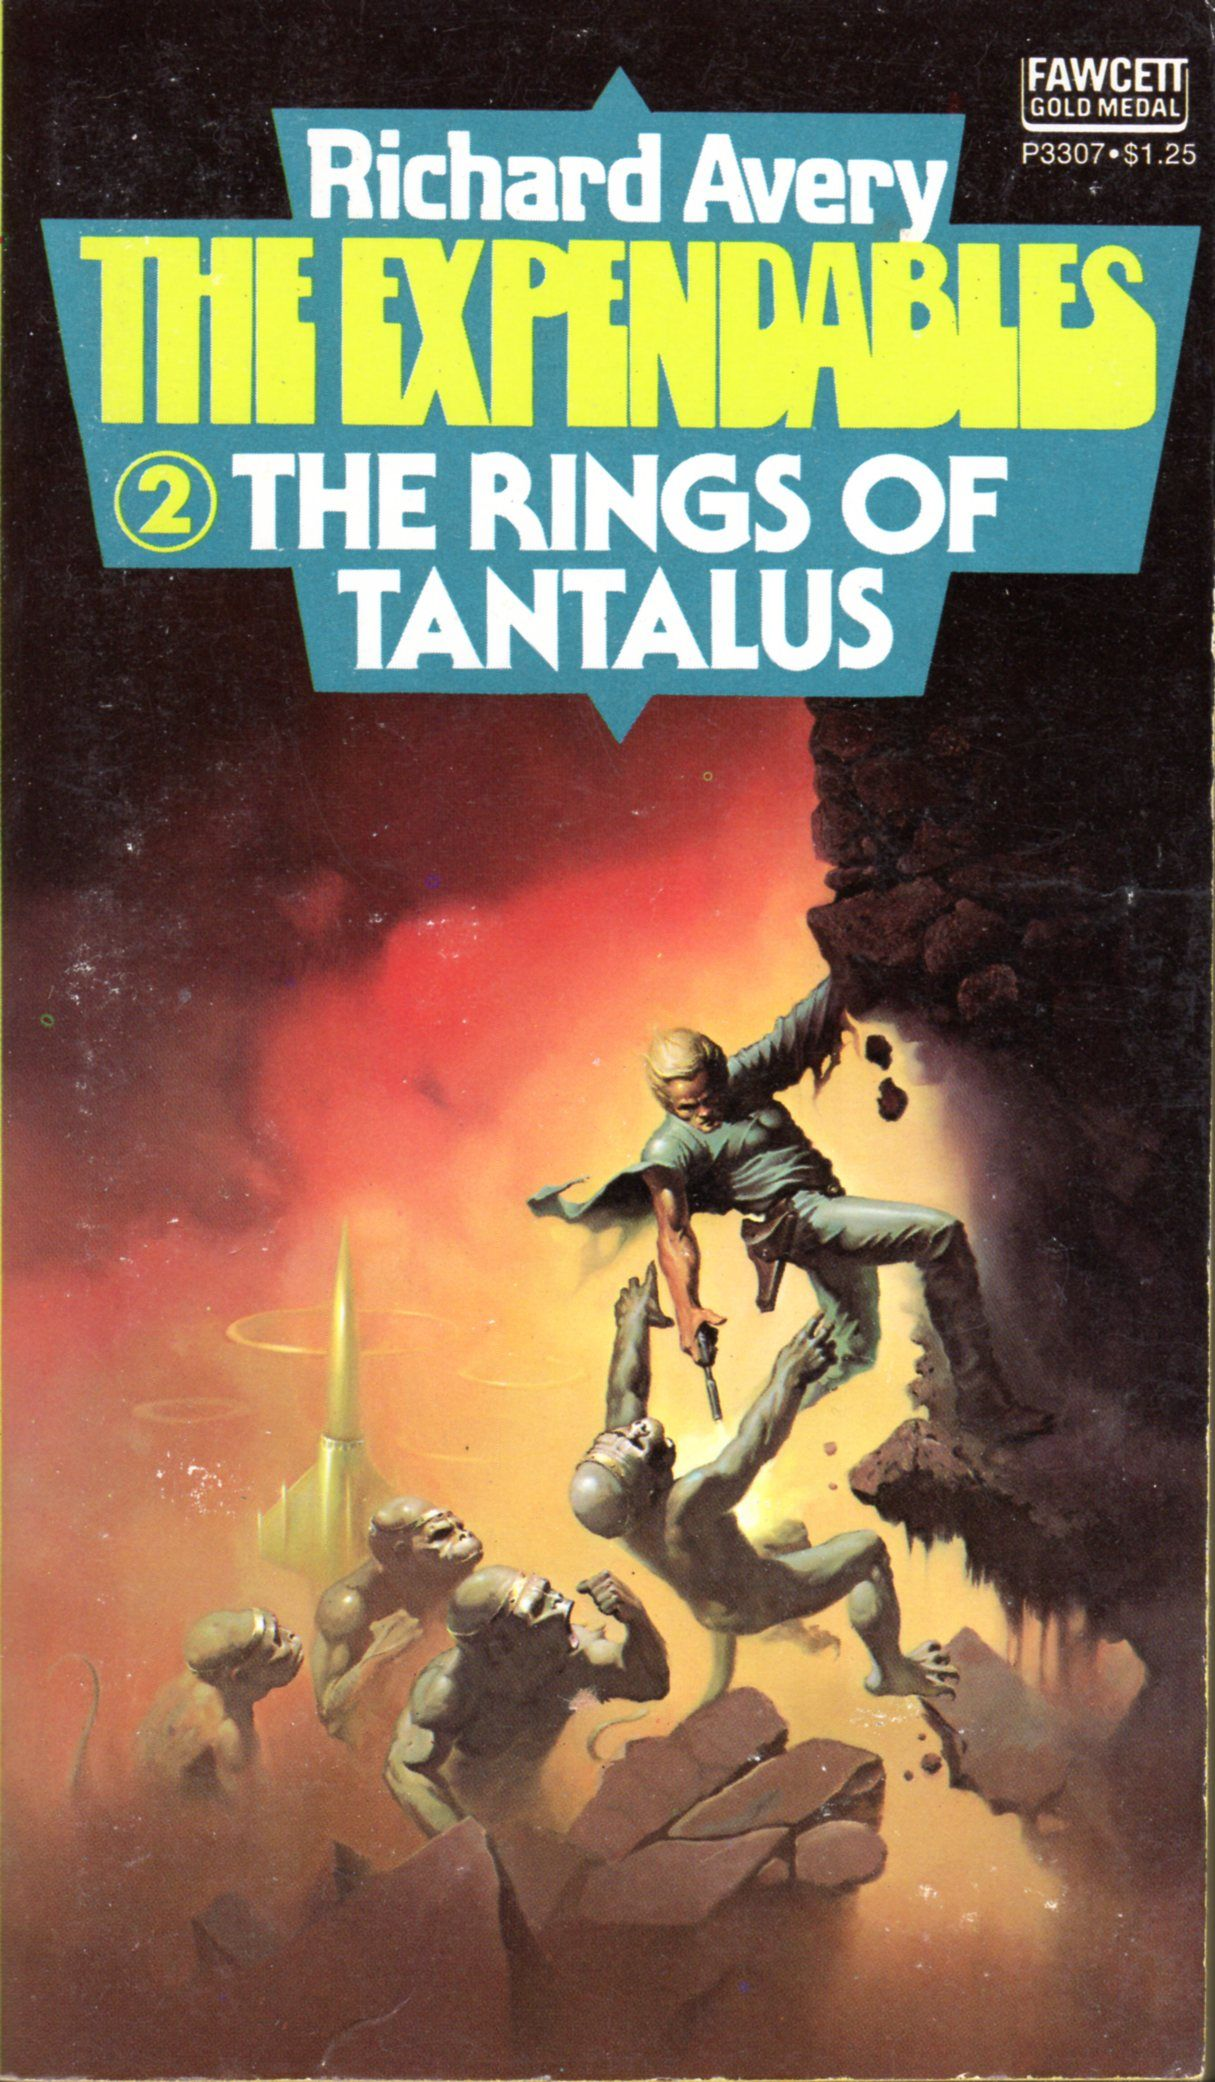 The Expendables #2: The Rings of Tantalus - Richard Avery, cover by ...